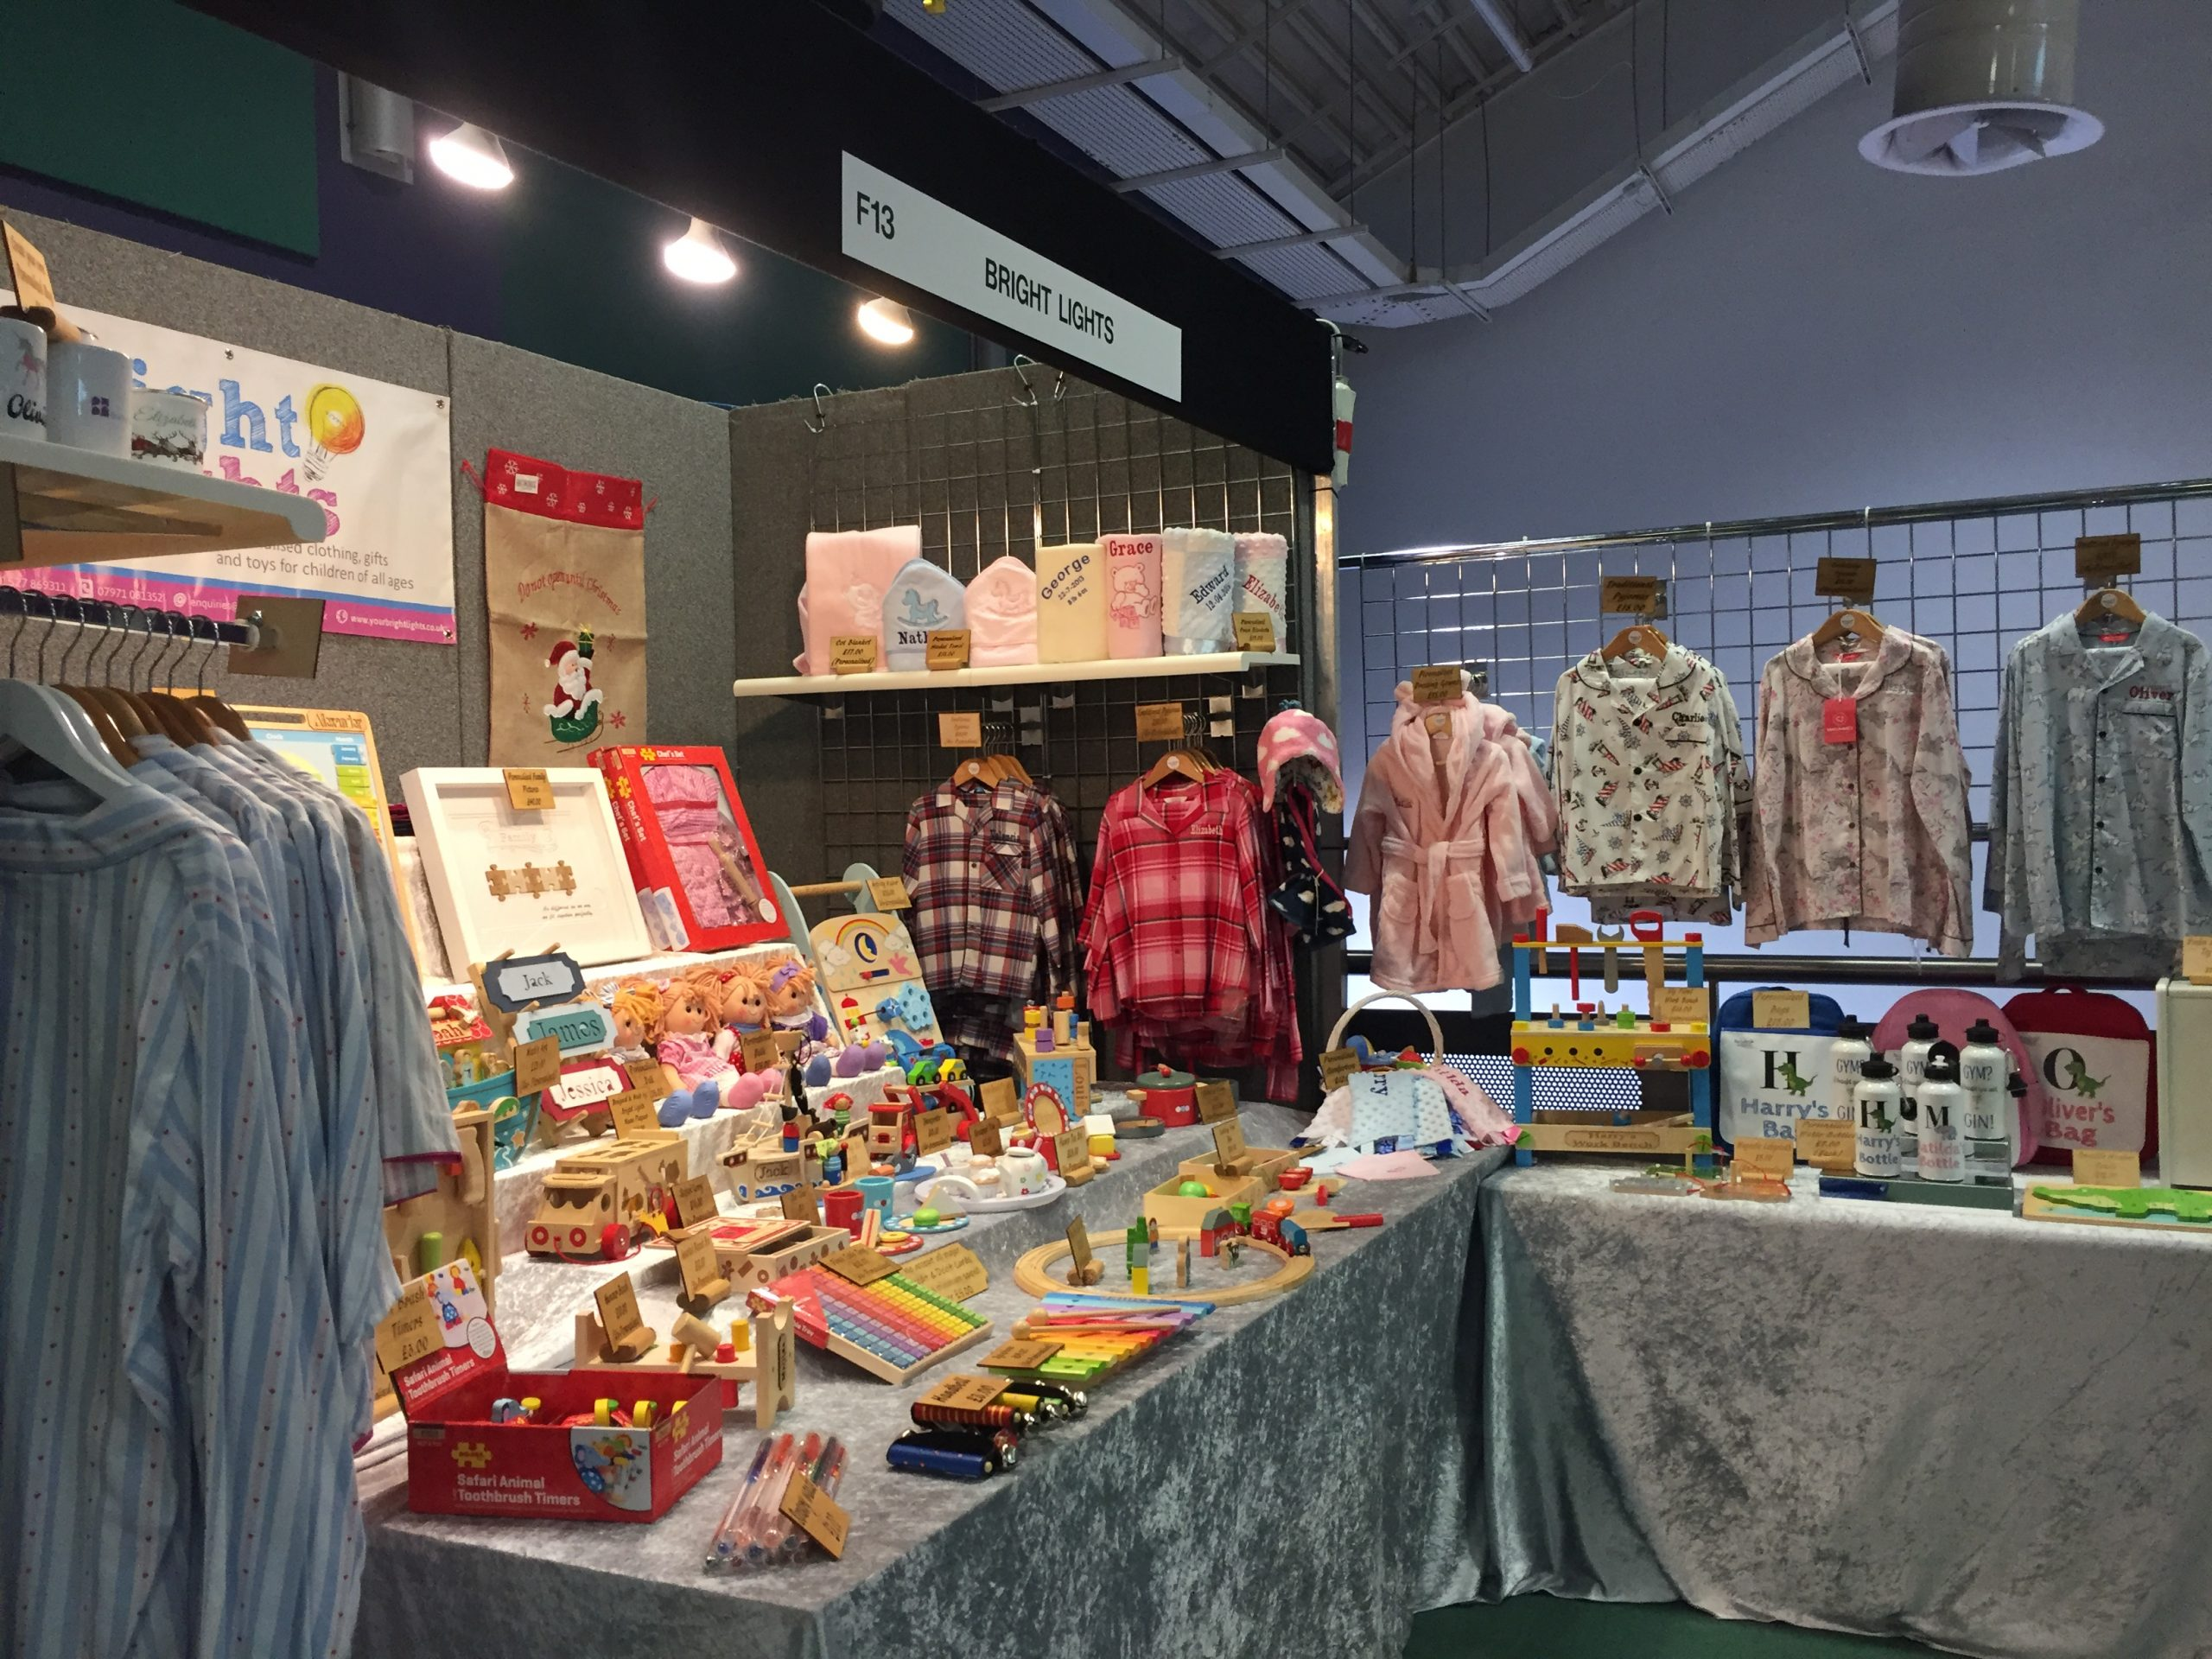 Come visit us exhibiting within the United Kingdom